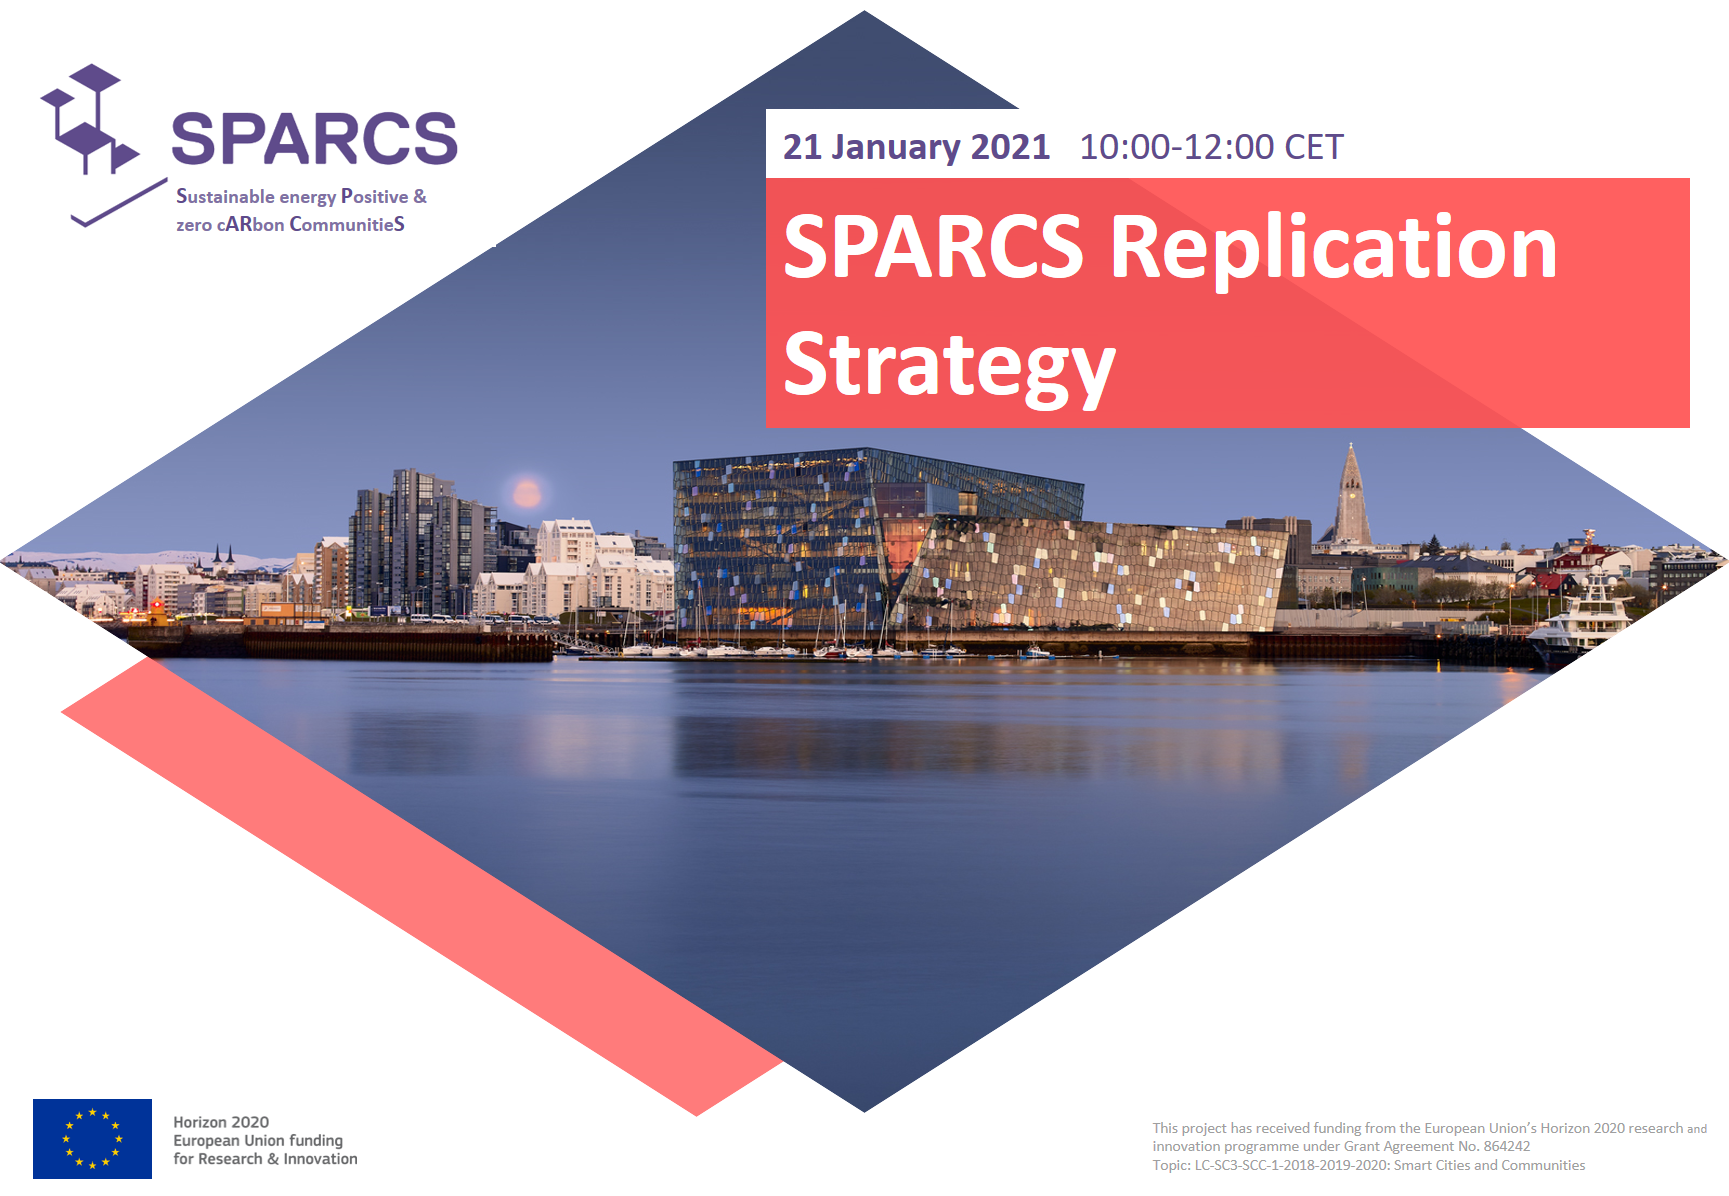 SPARCS Replication Strategy Webinar